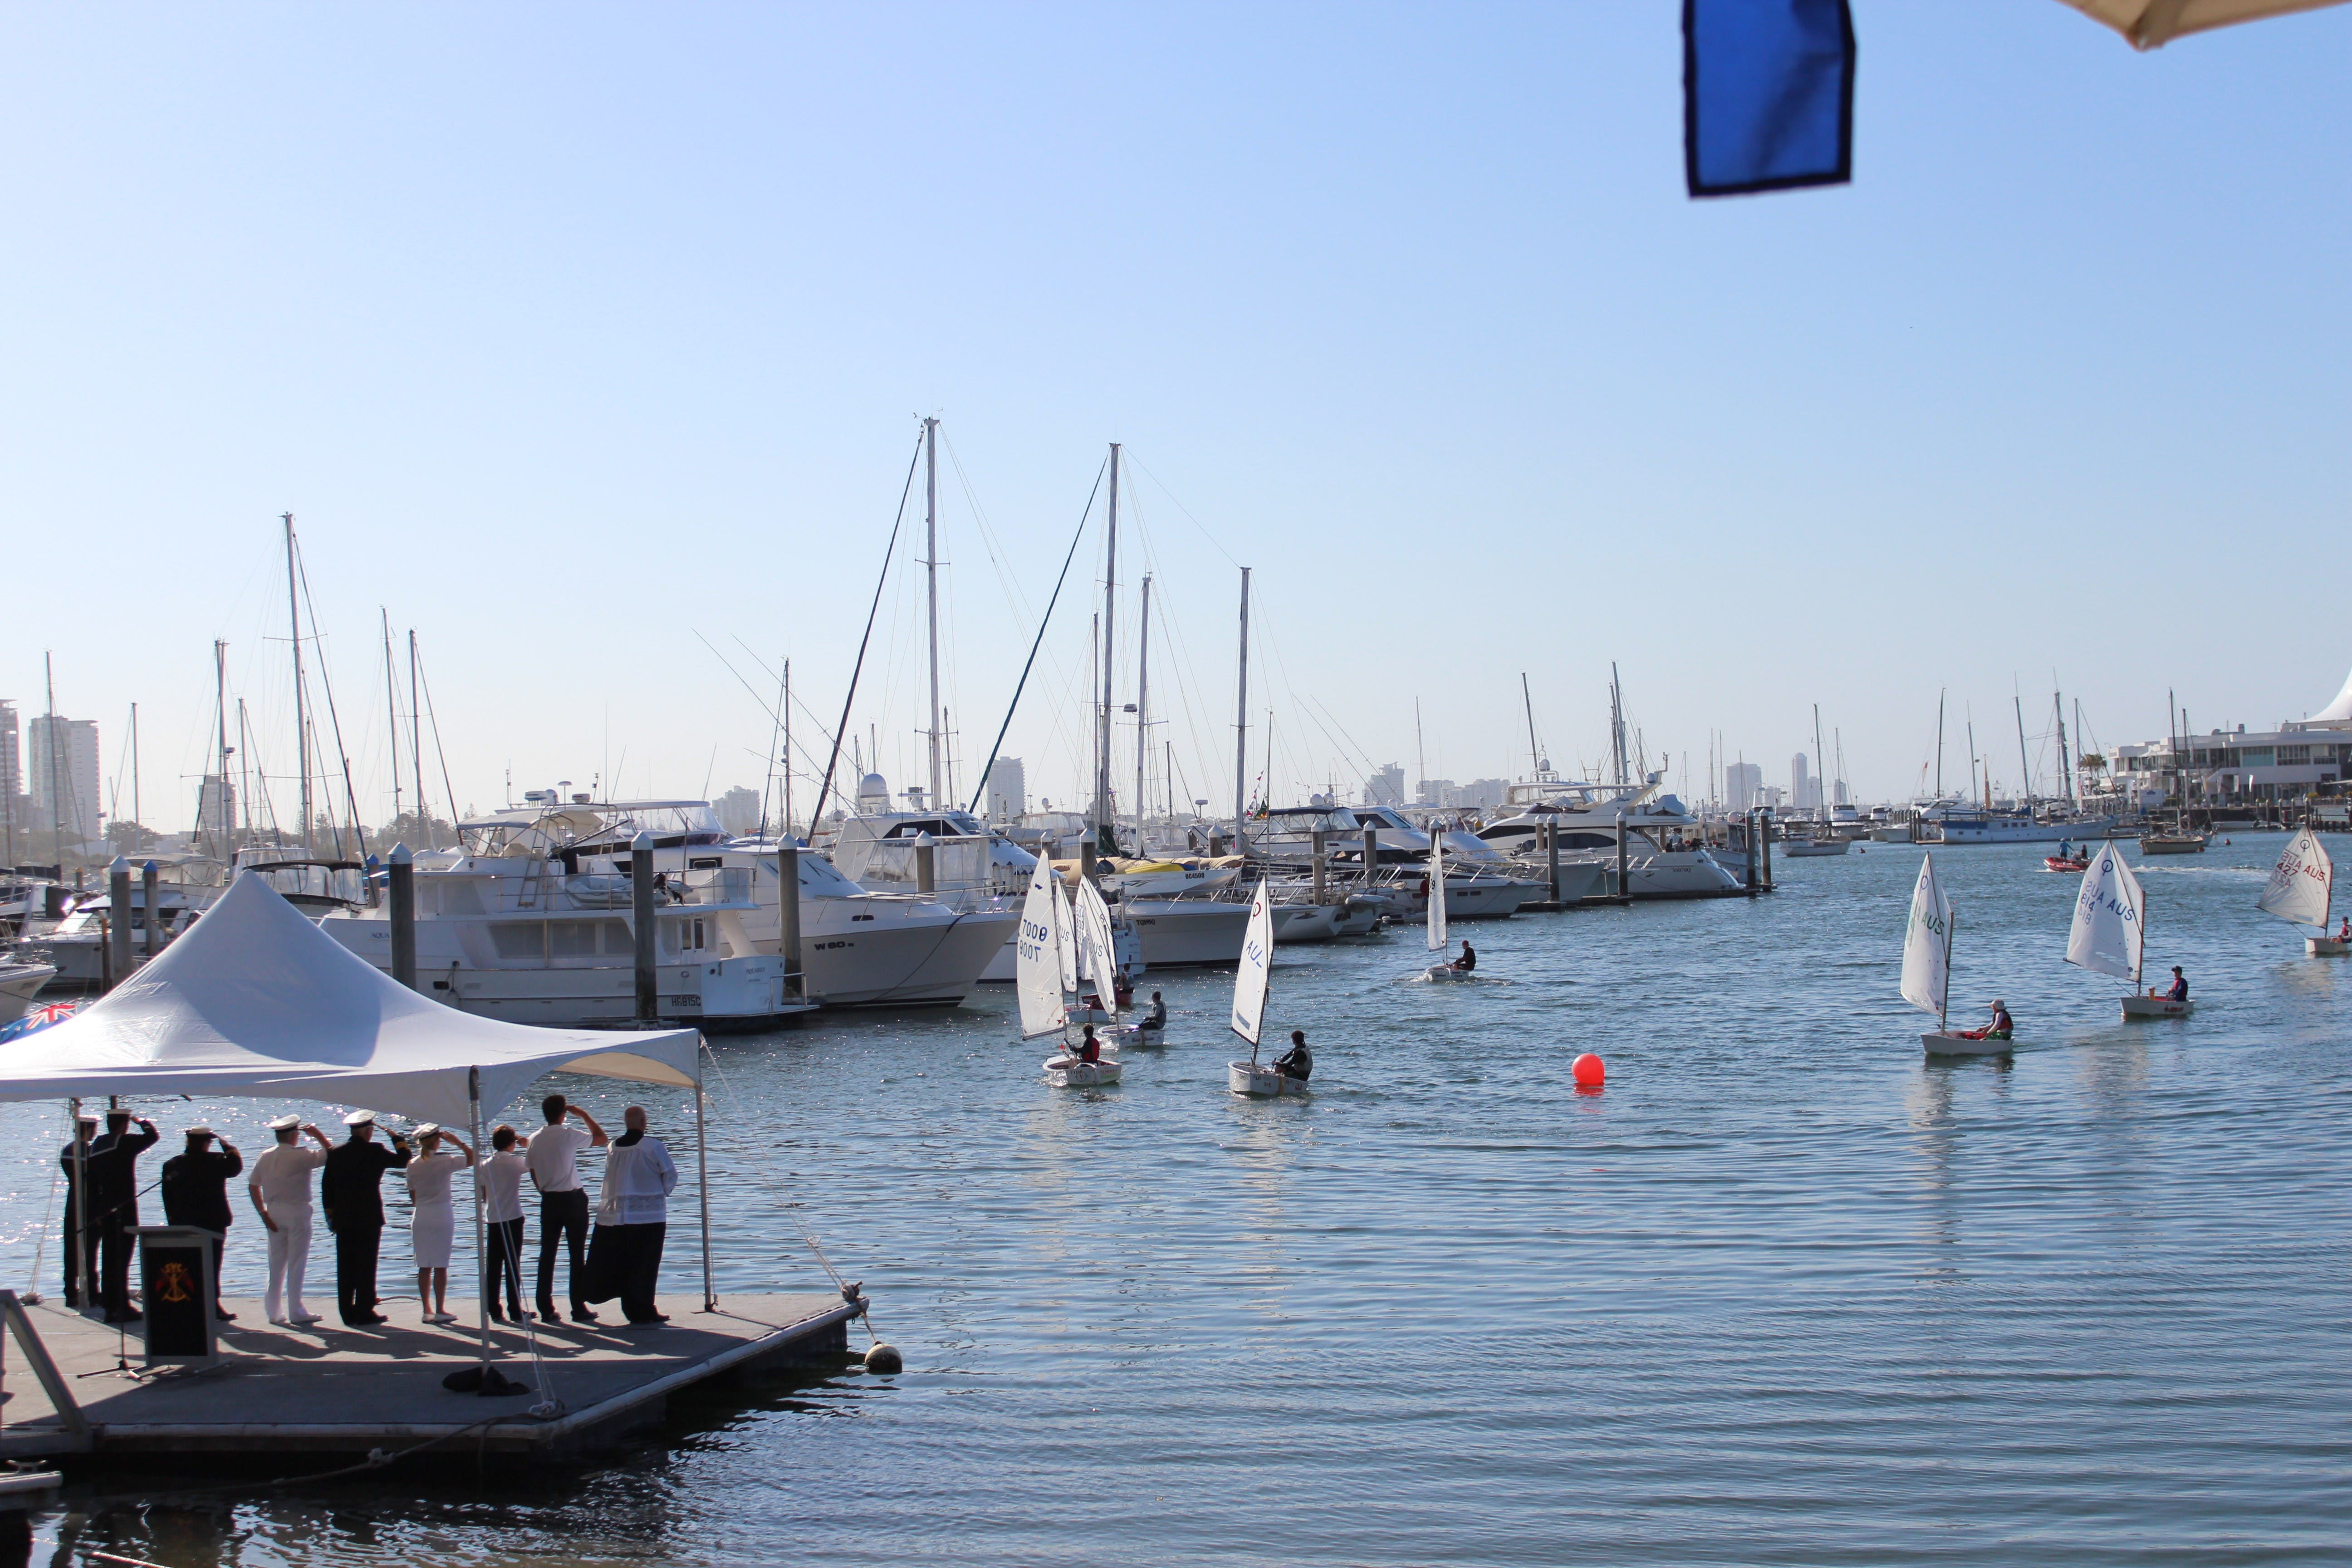 73rd Sail Past and Blessing of the Fleet - Palm Beach Accommodation